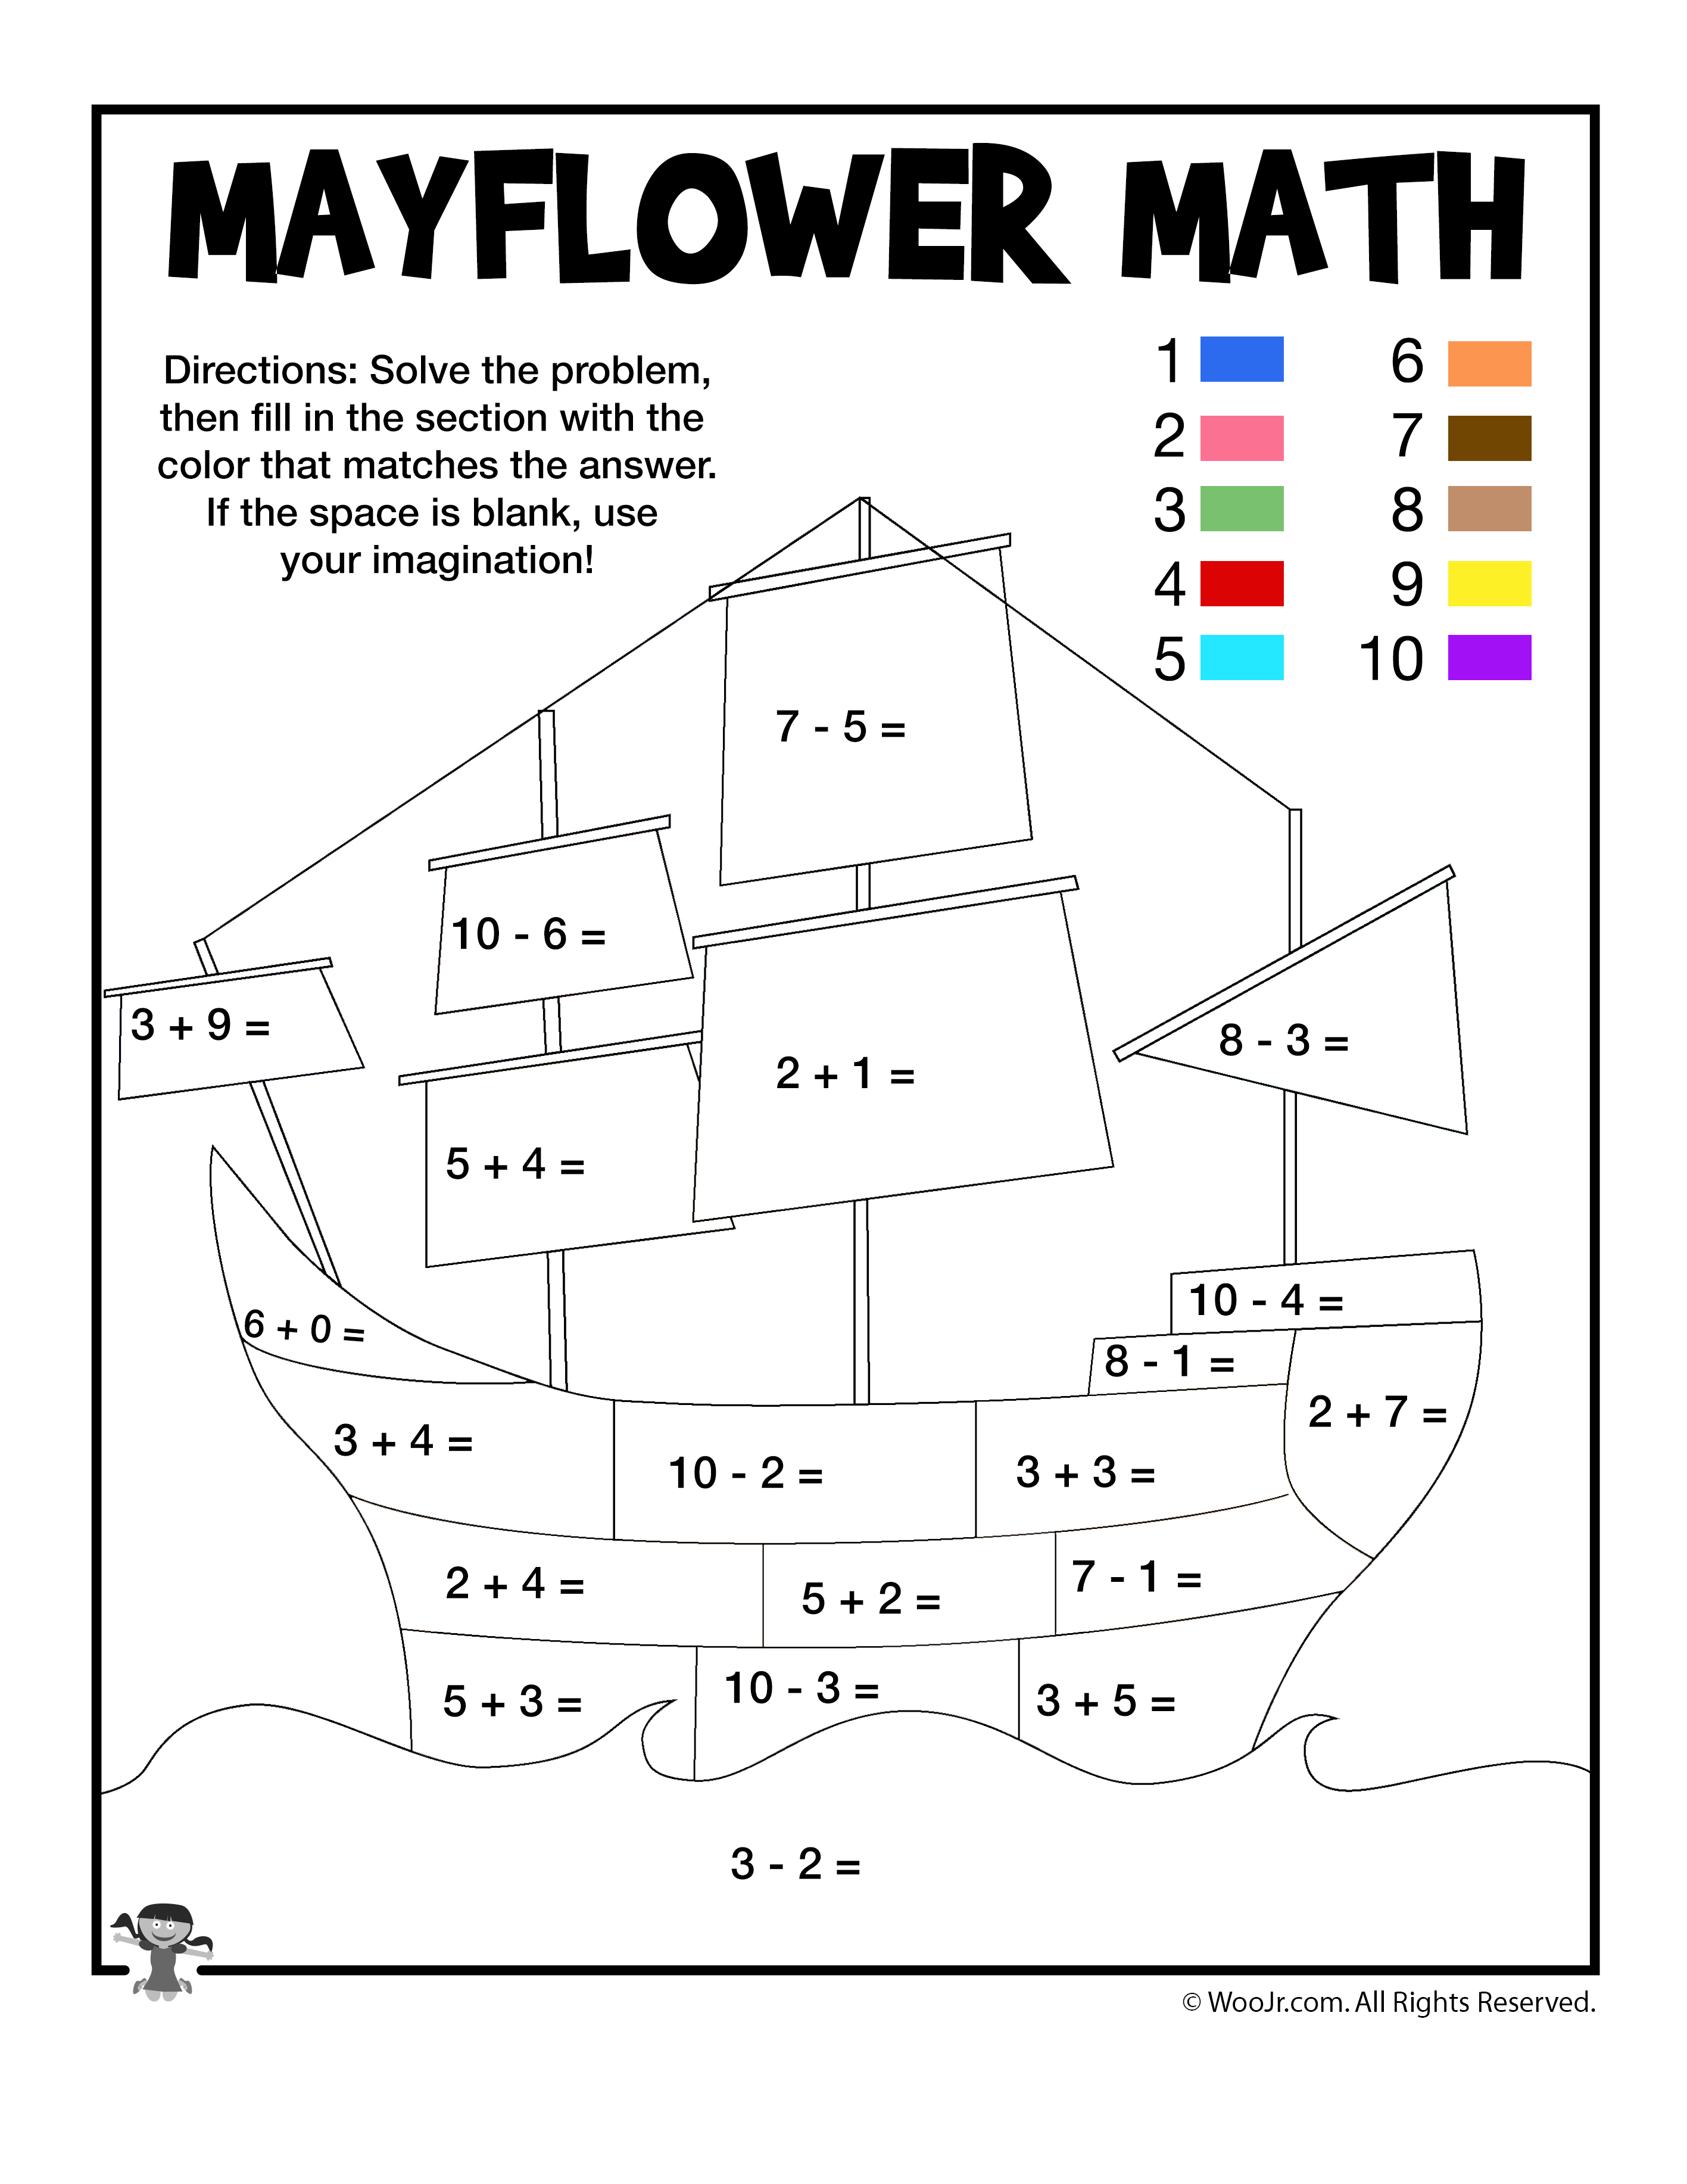 Mayflower Math Coloring Page